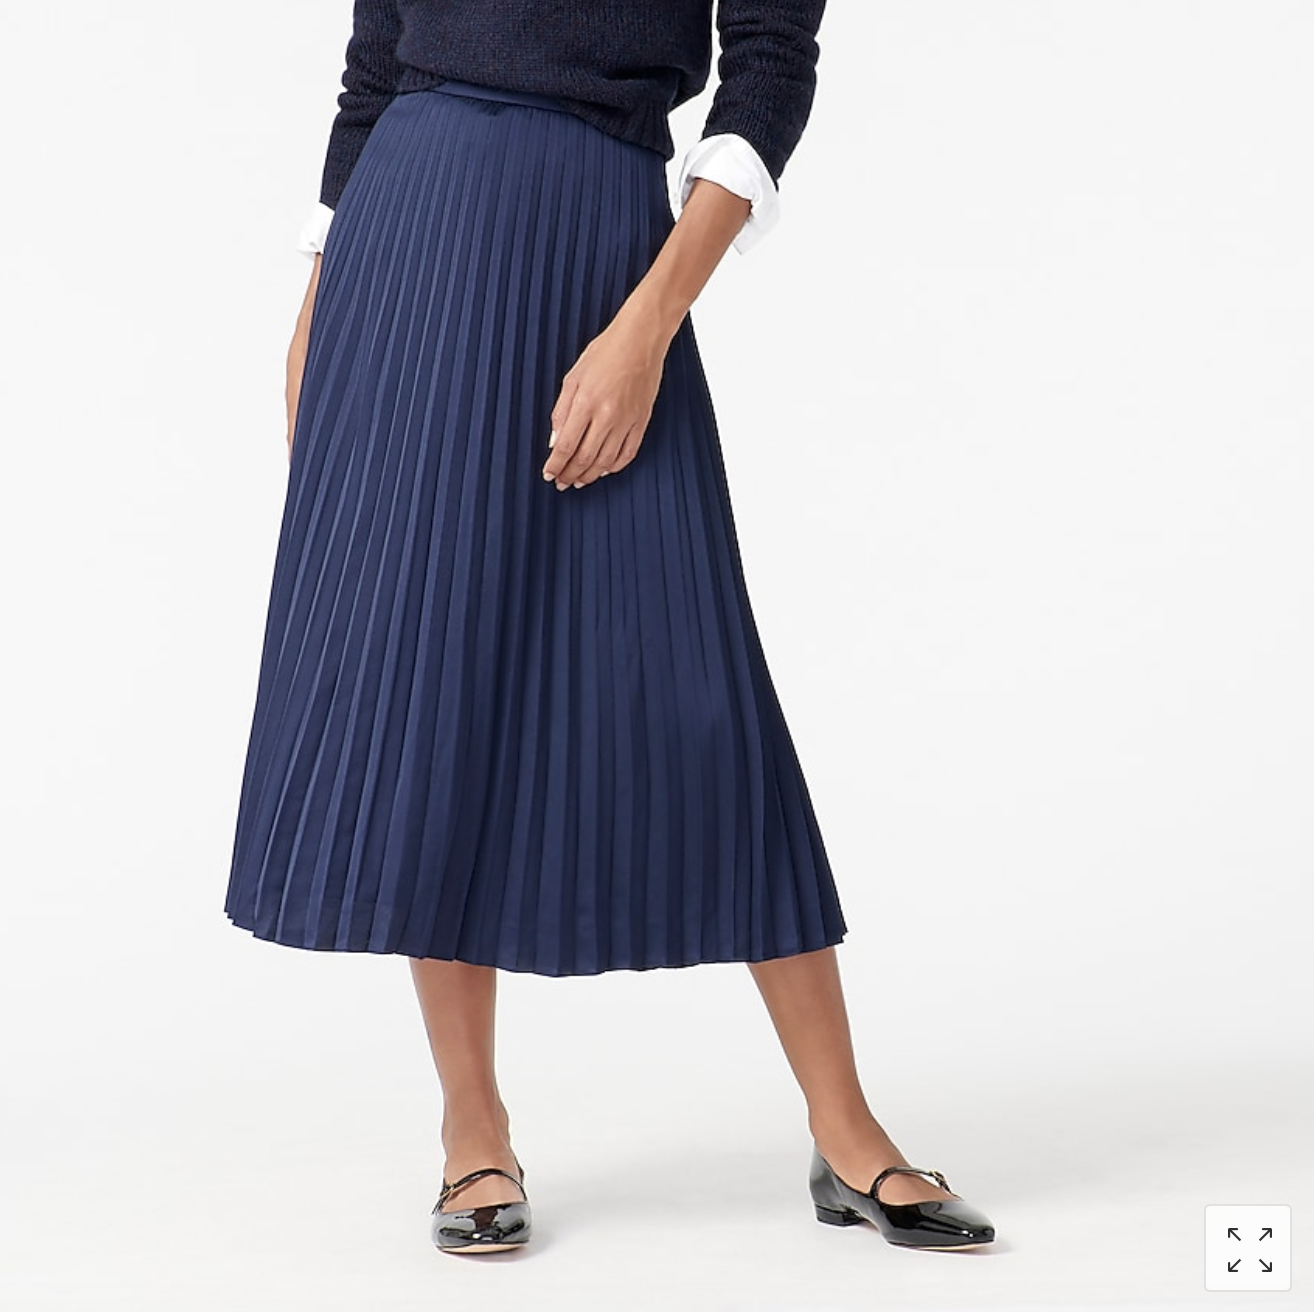 J.Crew: Extra 50% off select styles